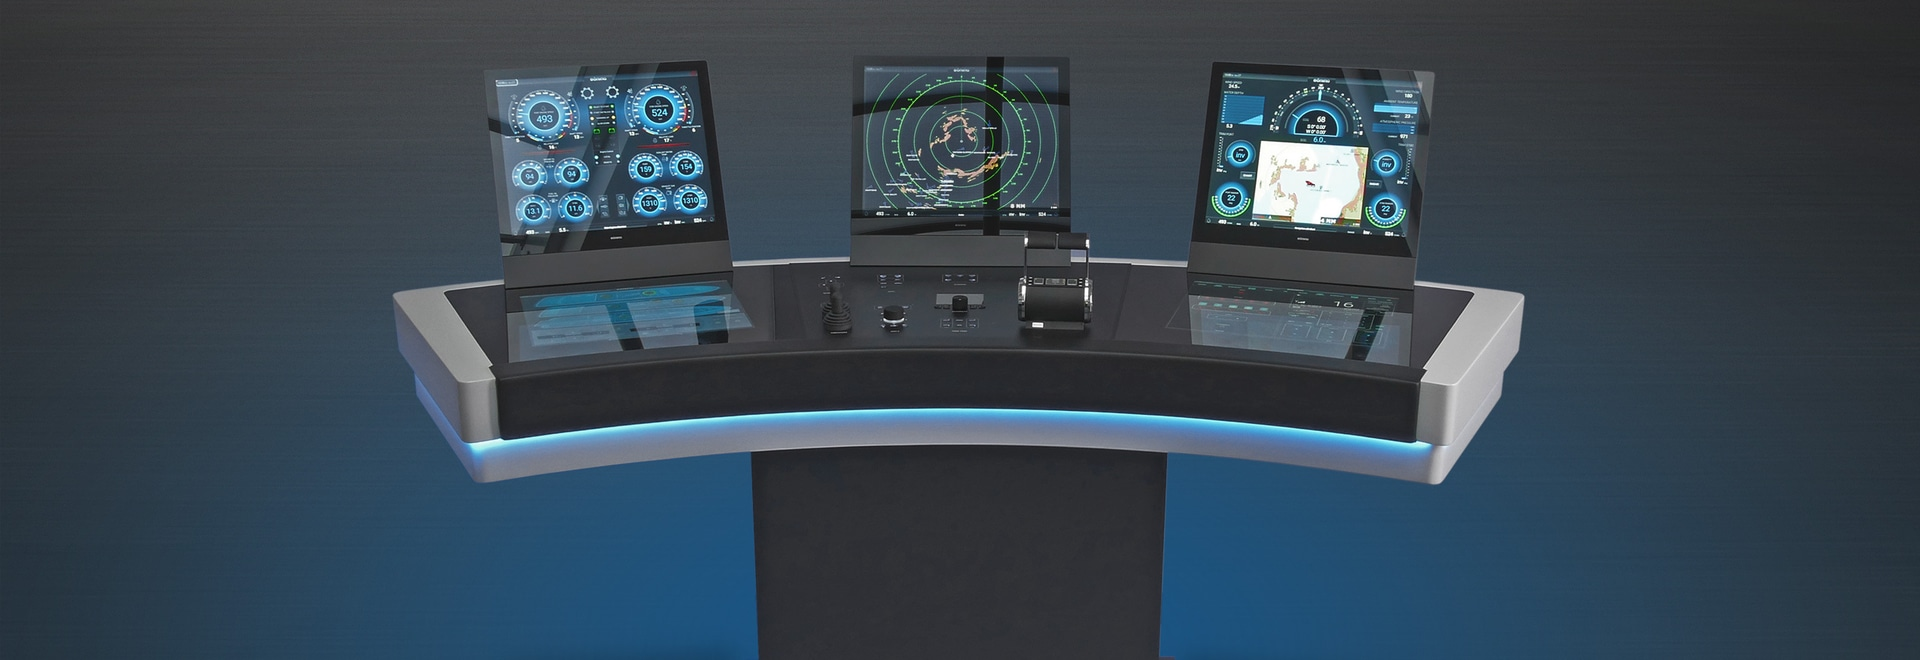 SI-19 Ultra Wide display with the new Electrical control system